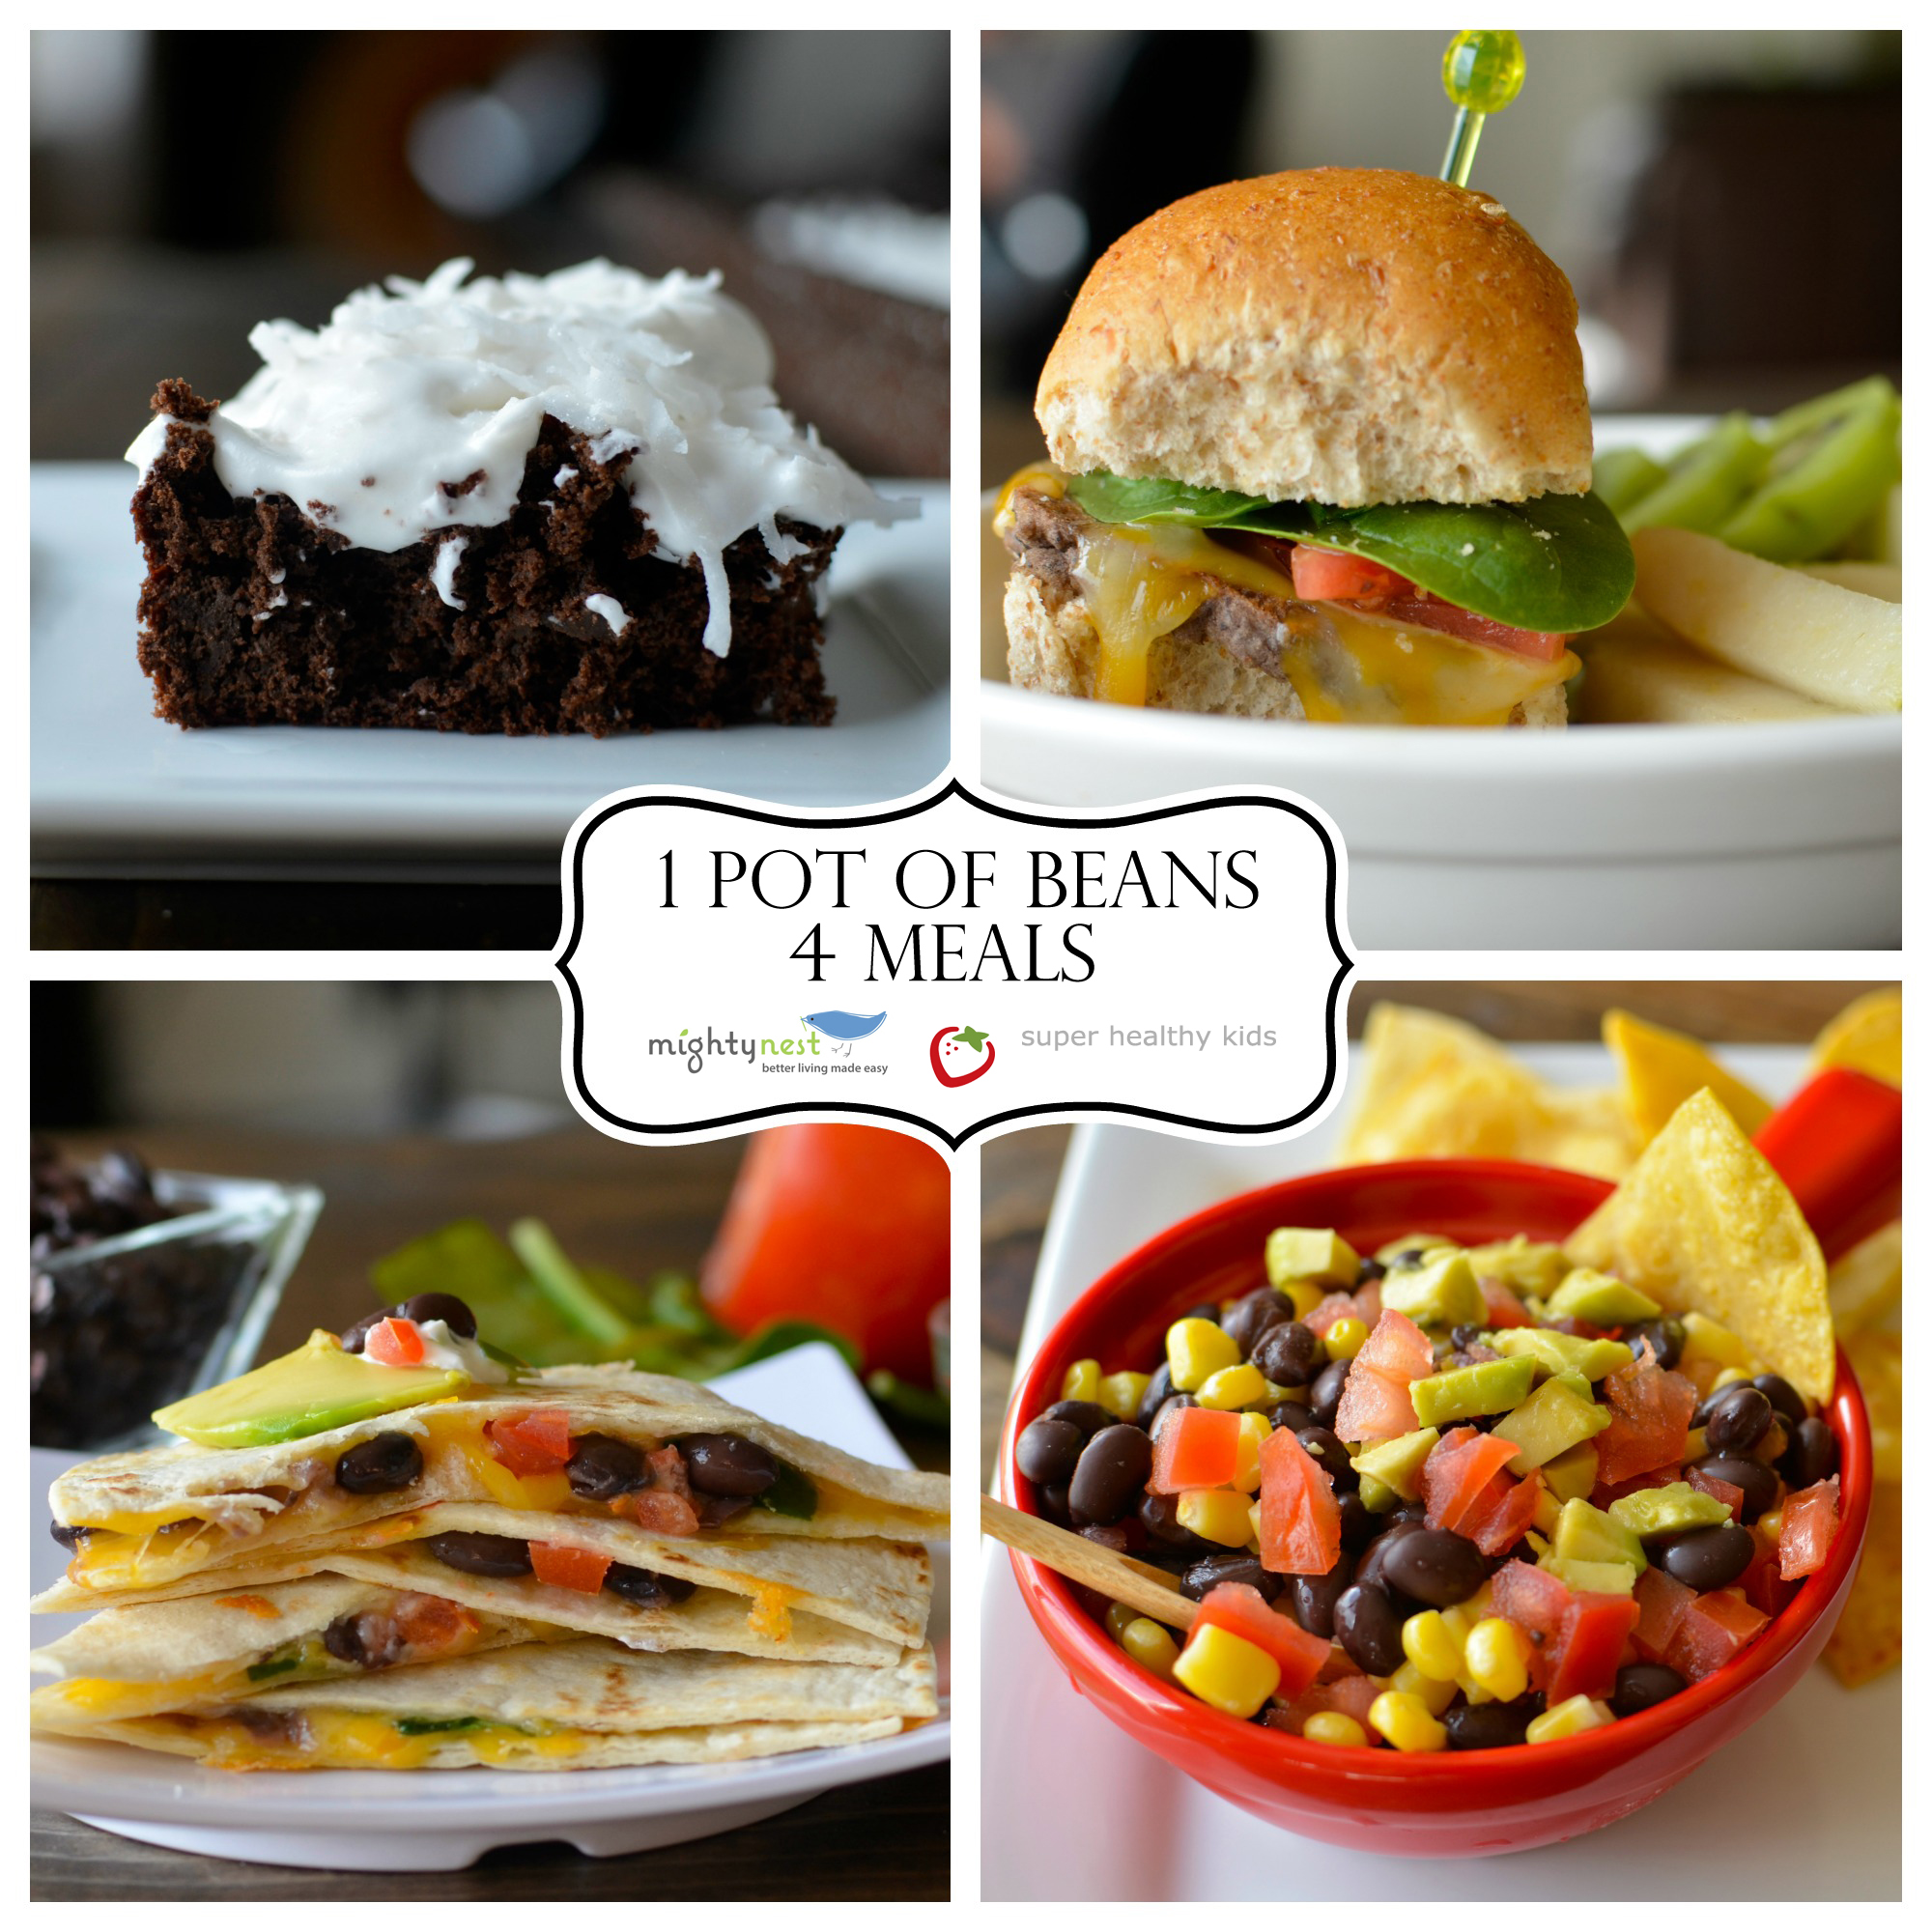 Good Dinner Recipes For 4: 4 Meals From 1 Pot Of Beans